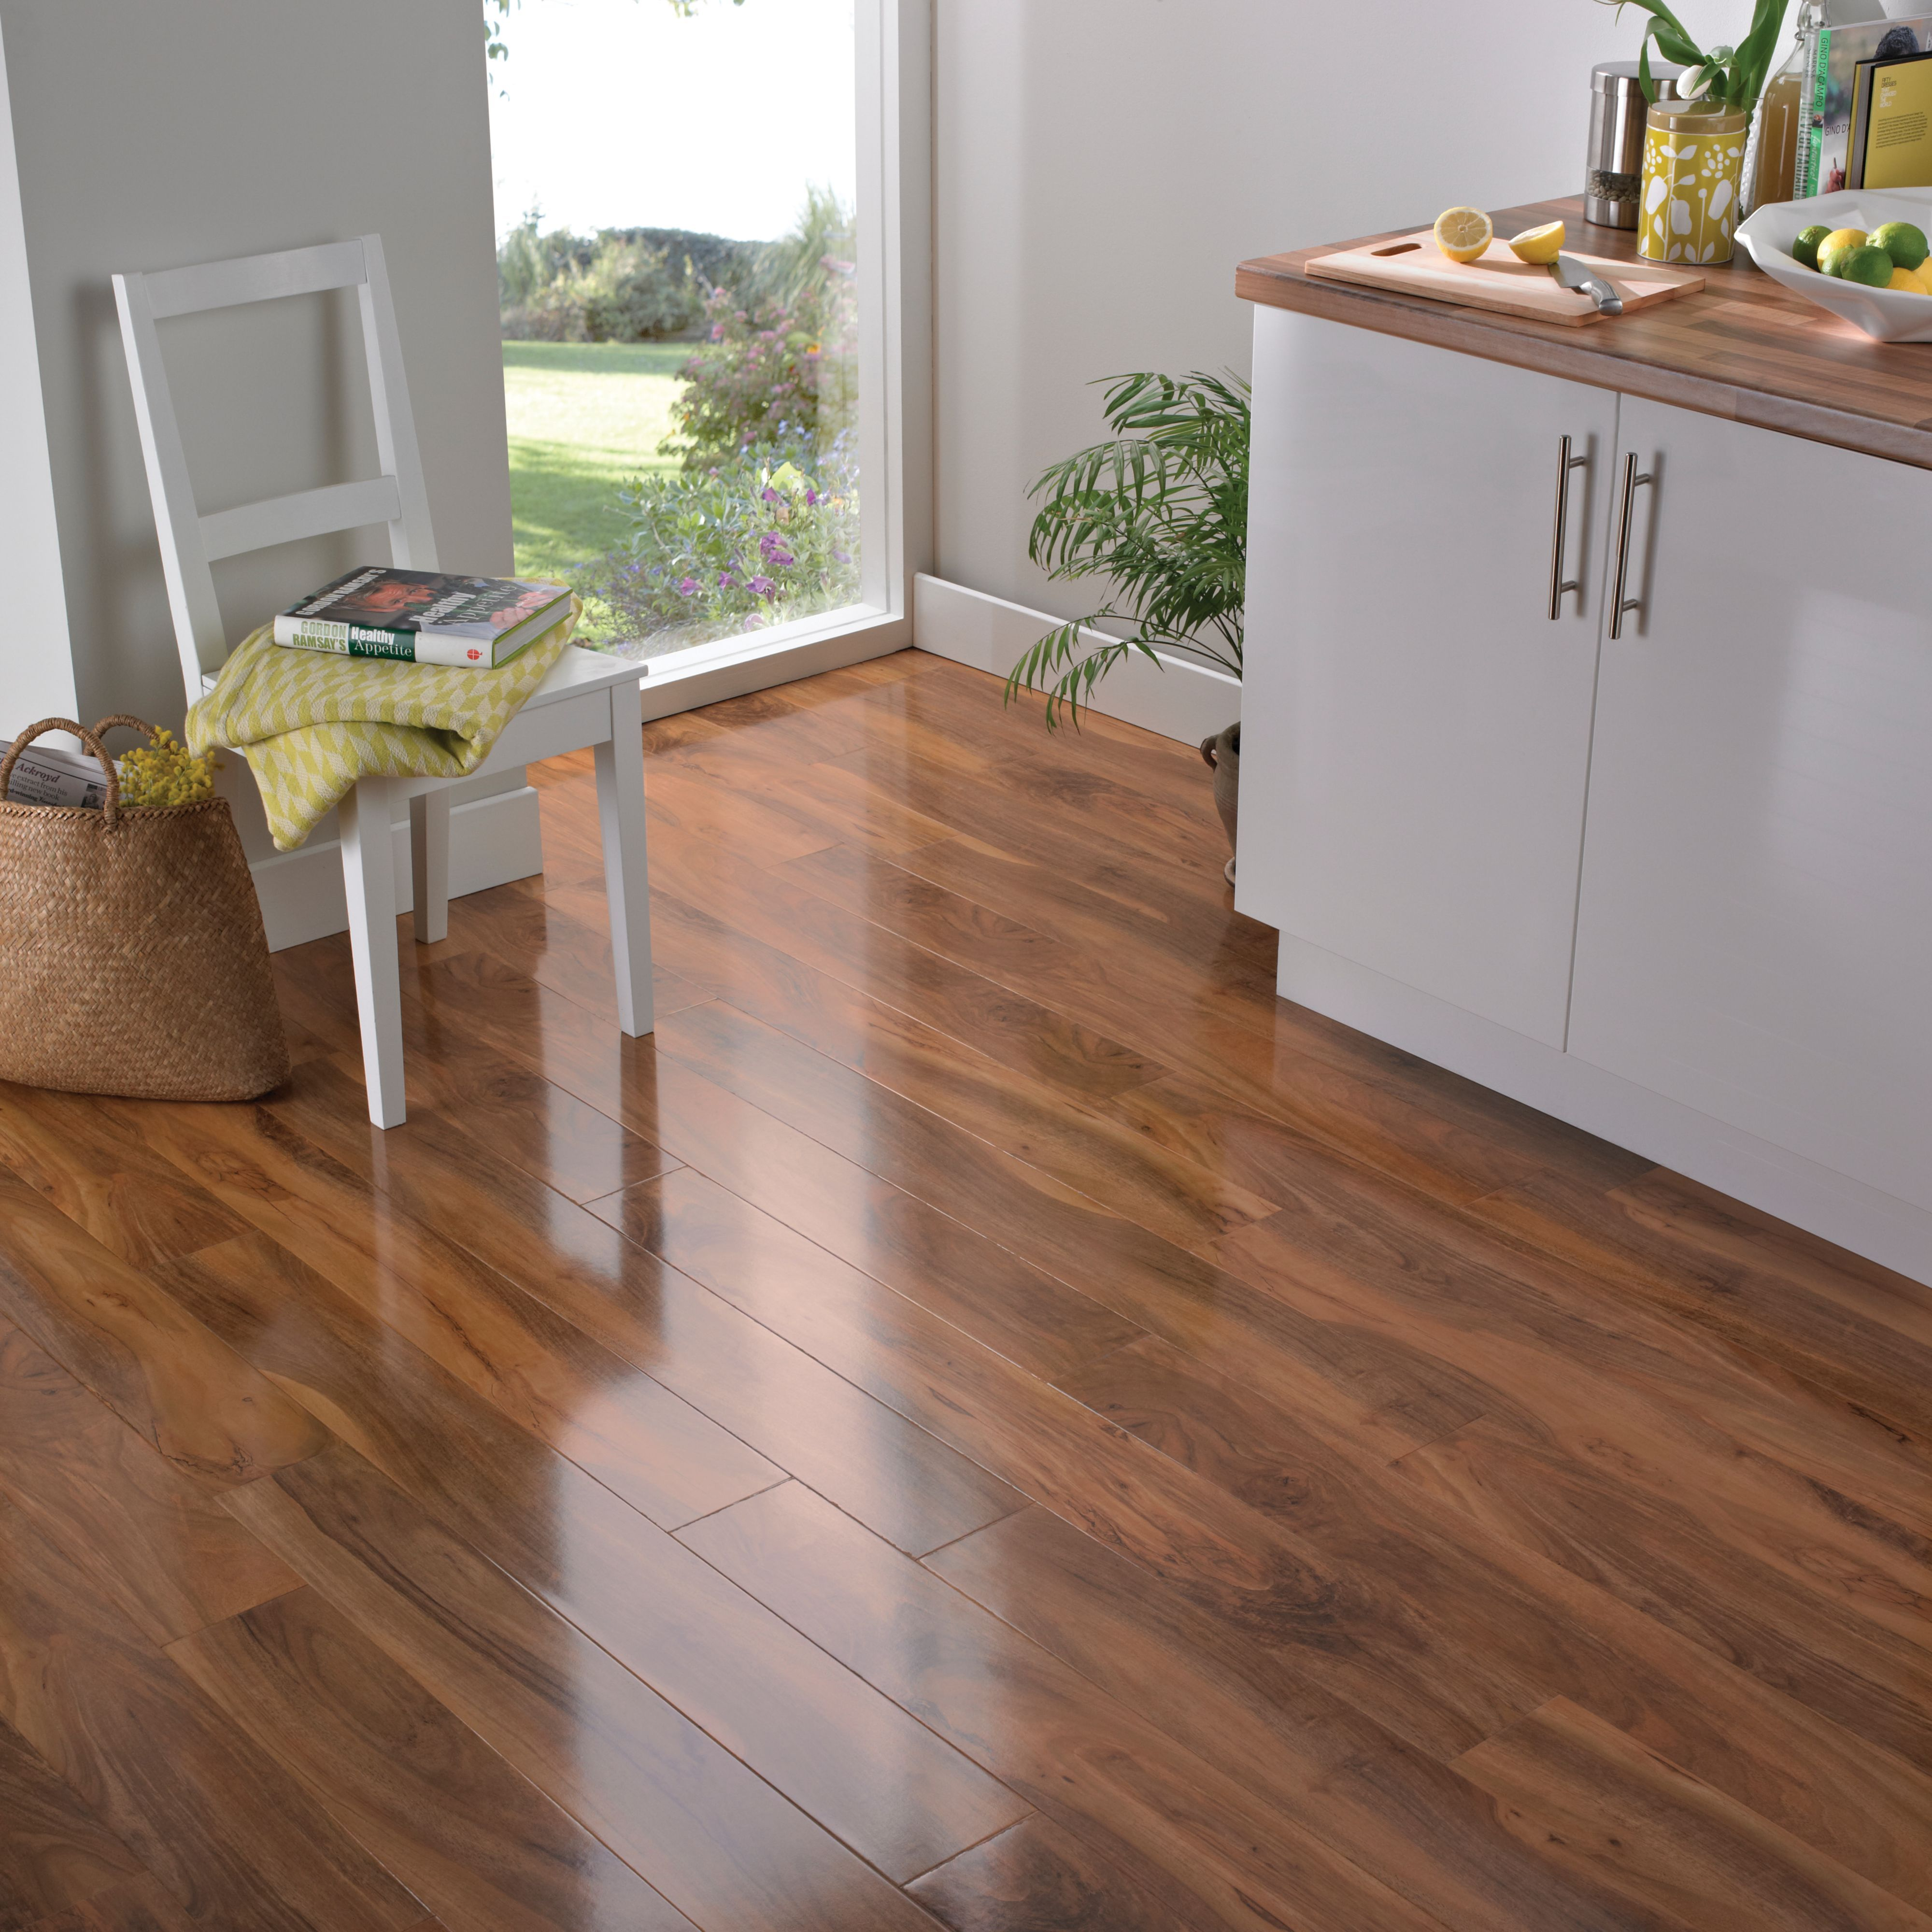 Colours Dolce Walnut Effect Laminate Flooring 1 18m Rooms Diy At B Q Flooring Laminate Flooring Laminate Flooring Colors